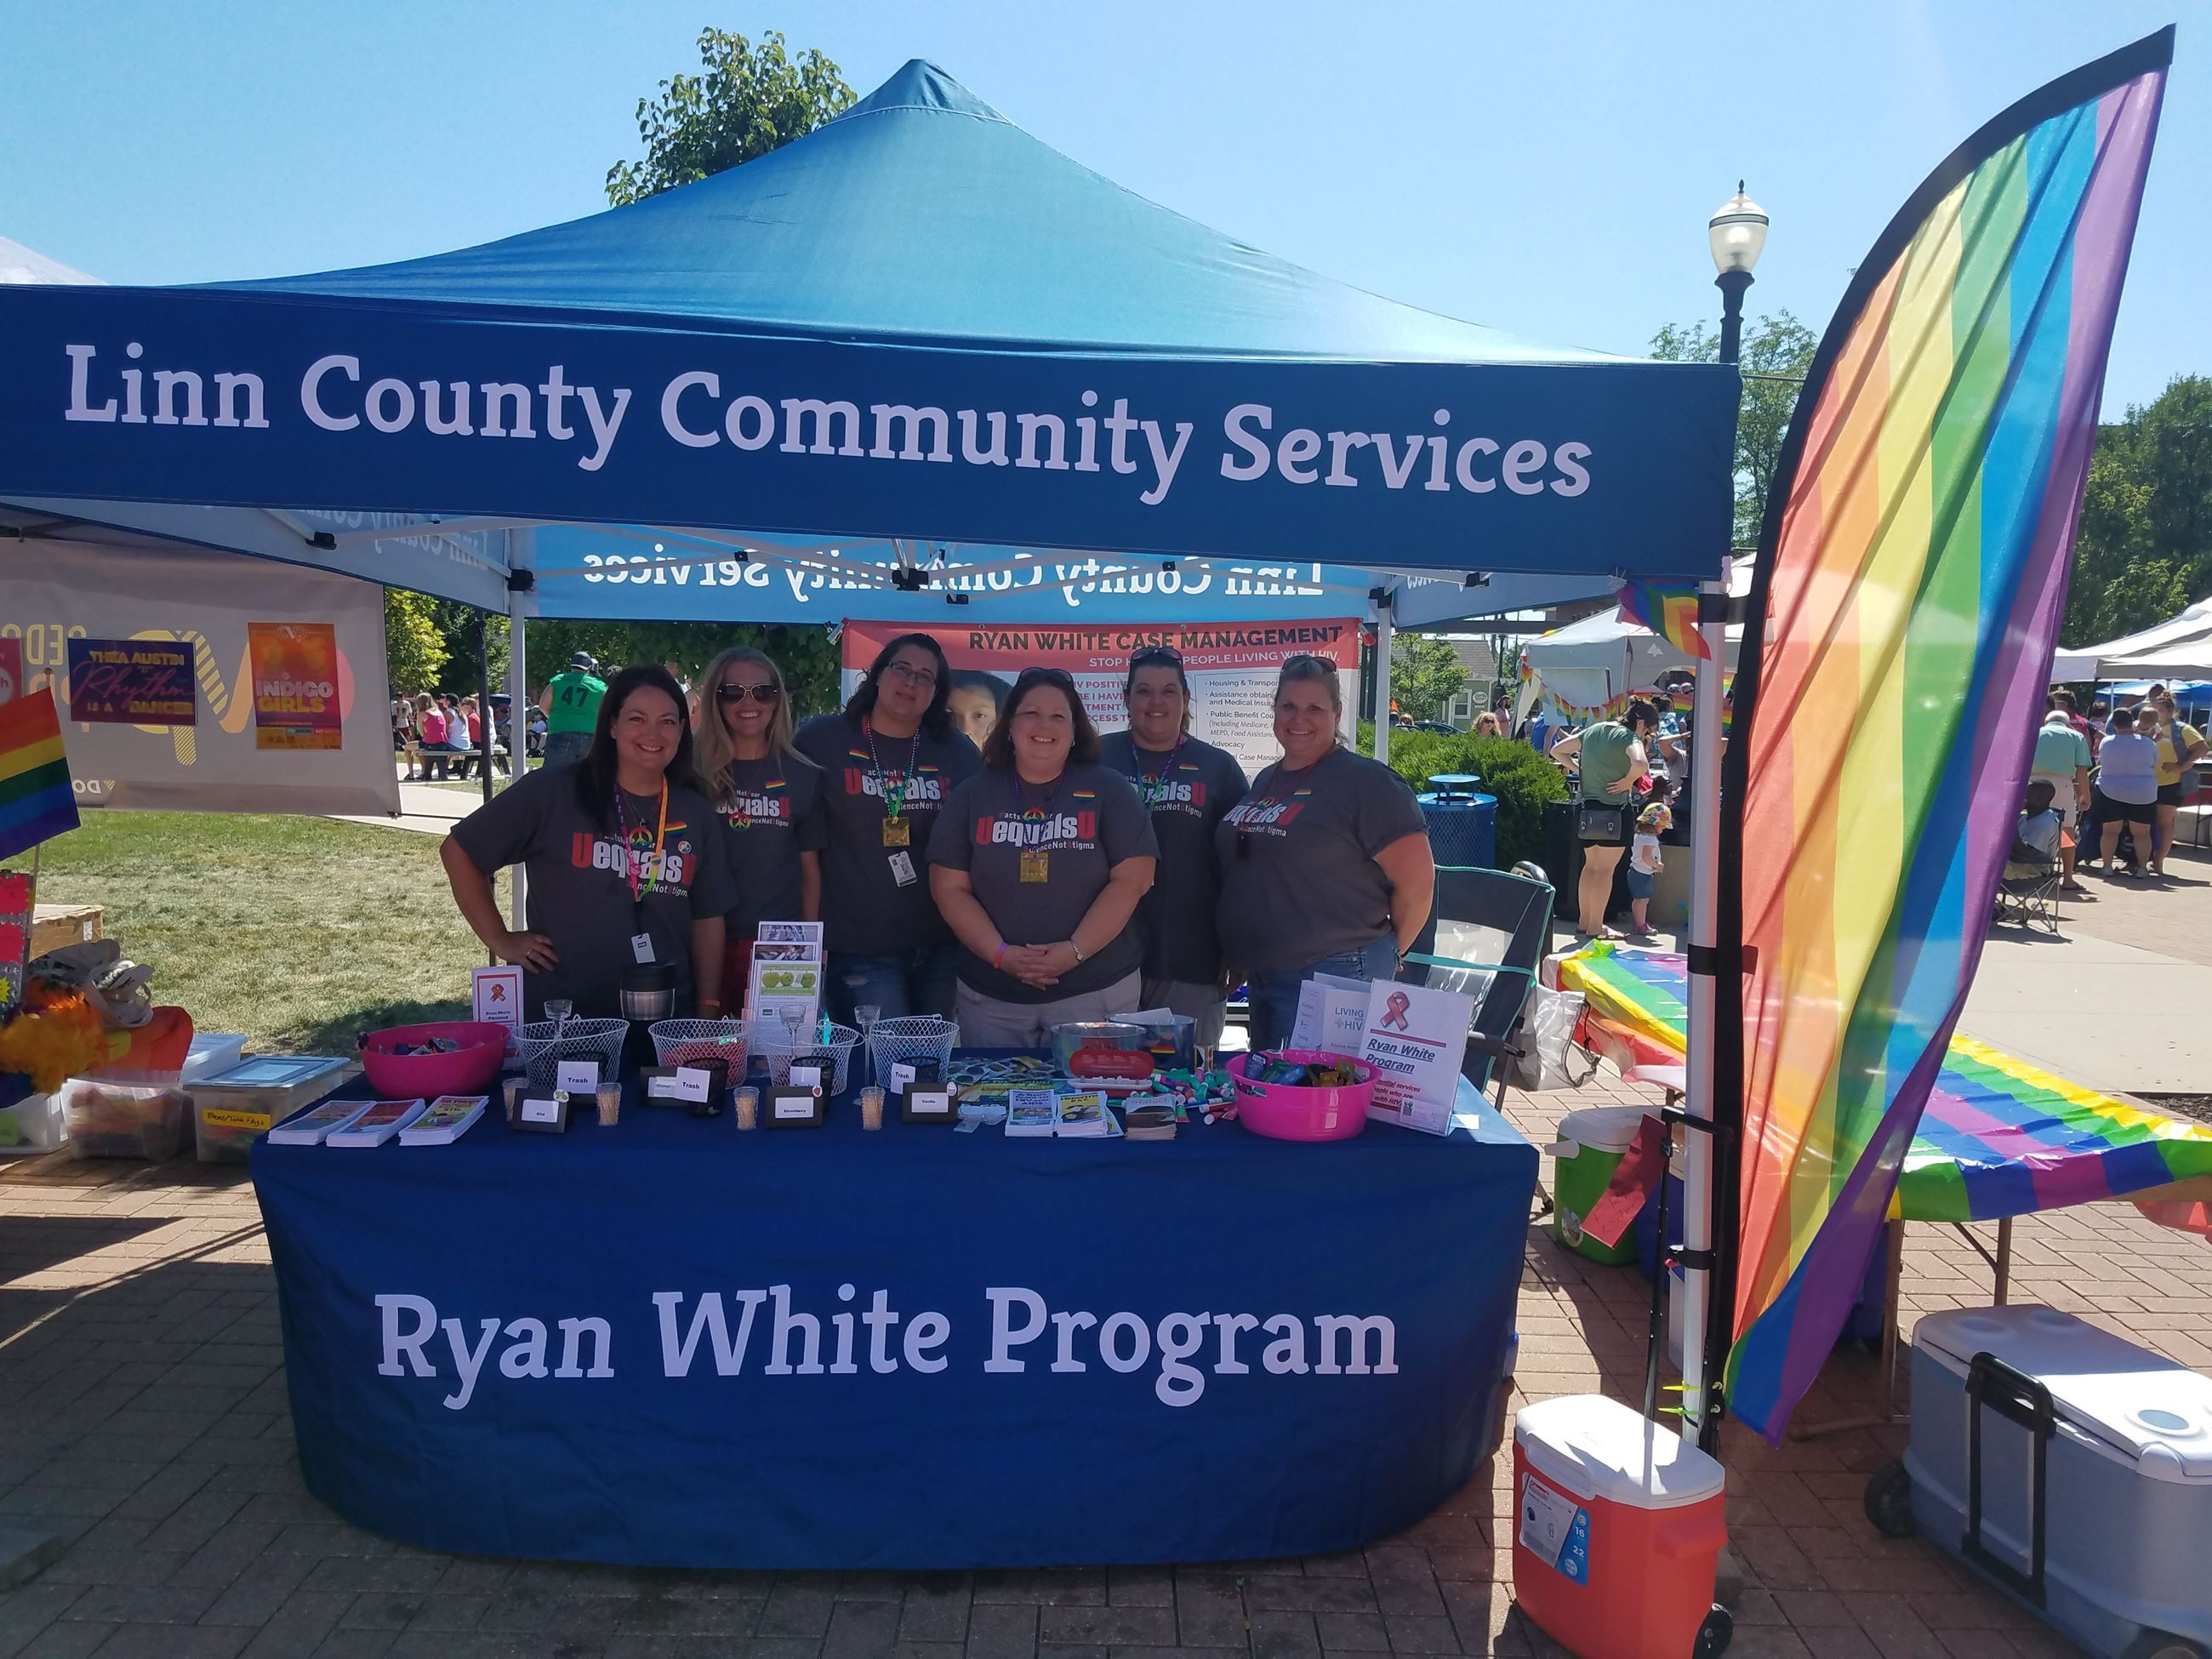 Ryan White Program Tent